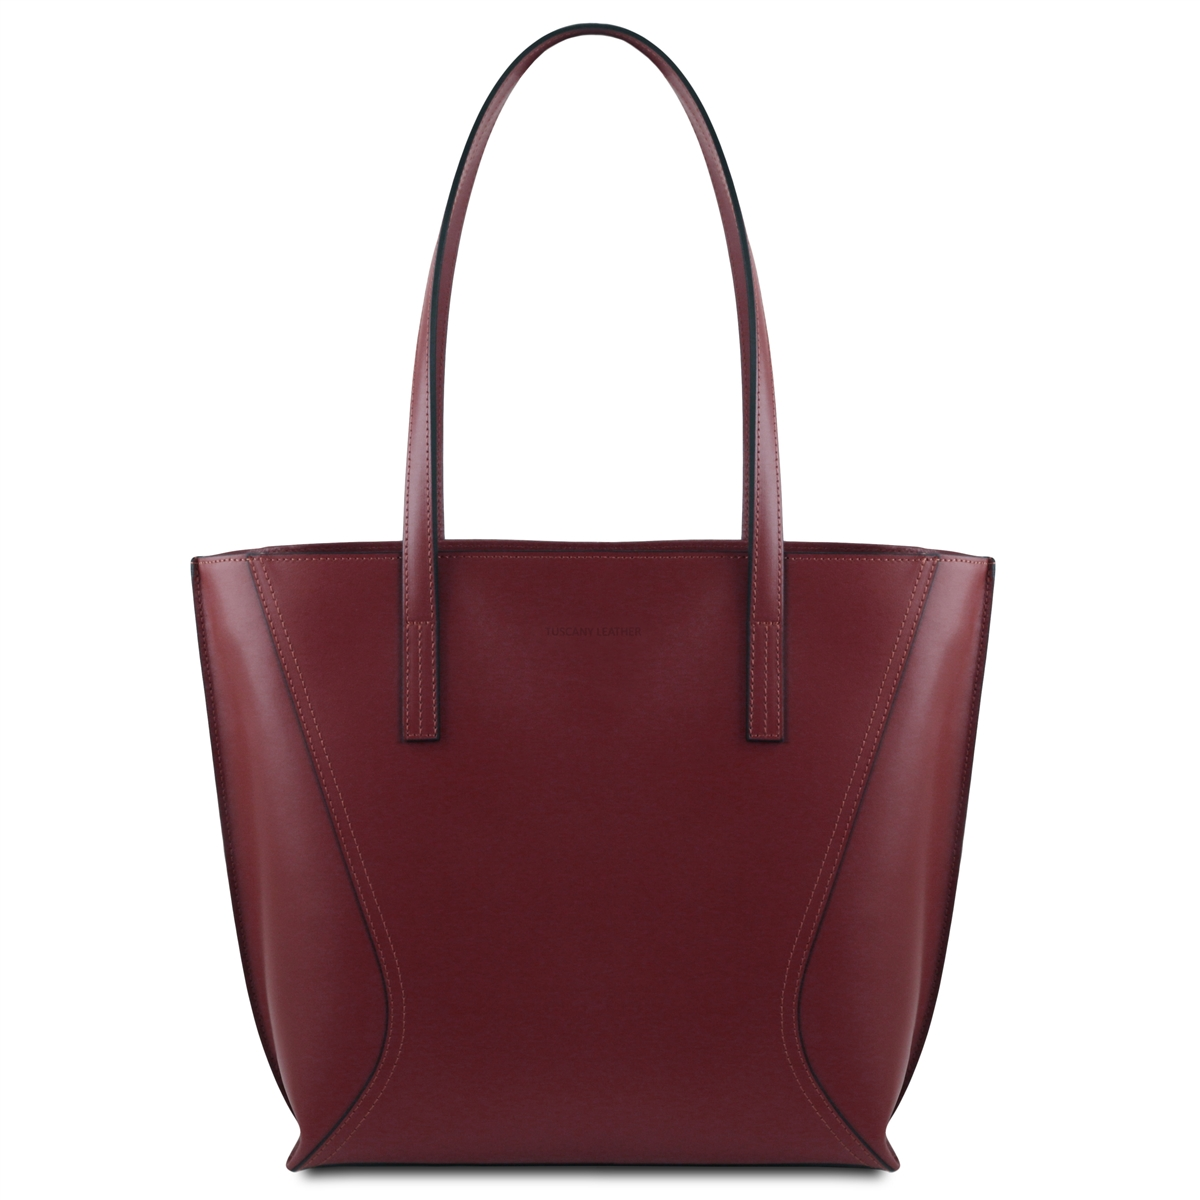 34c2ff870c3a Tuscany Leather TL14170 Nemesi Leather Shopping Bag - Bordeaux